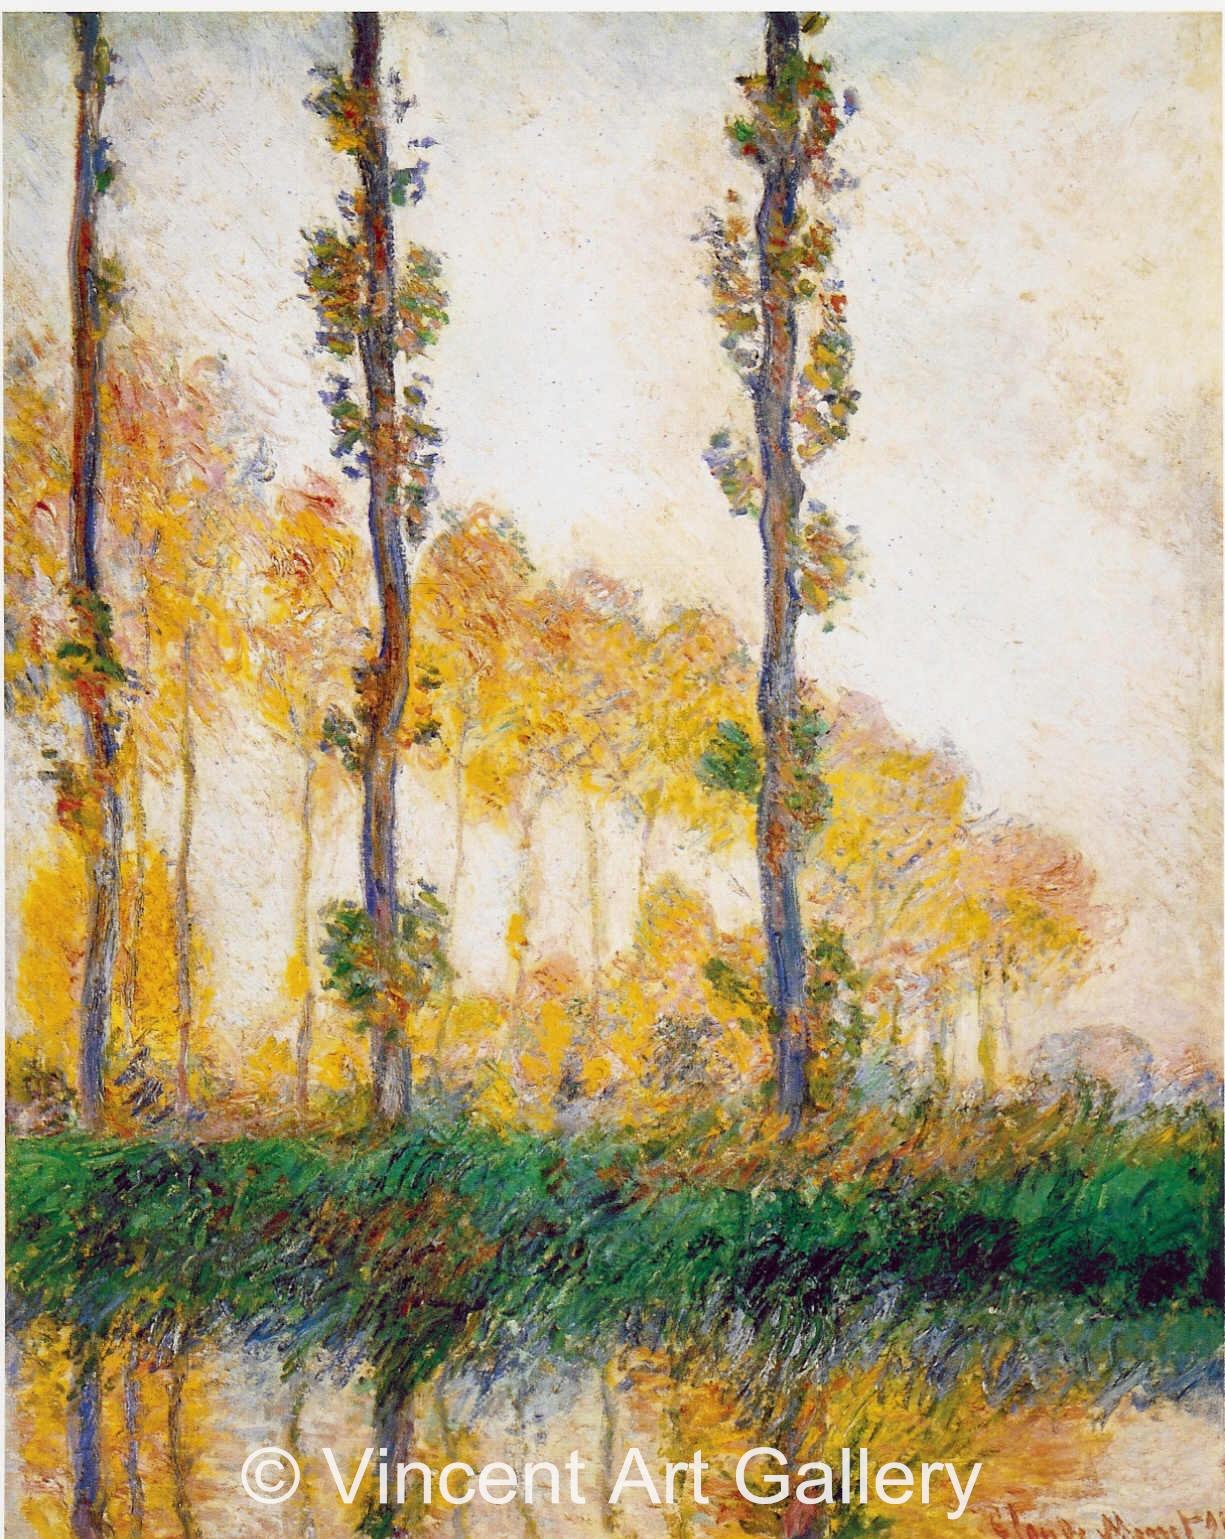 A2800, MONET, Three Trees in Autumn